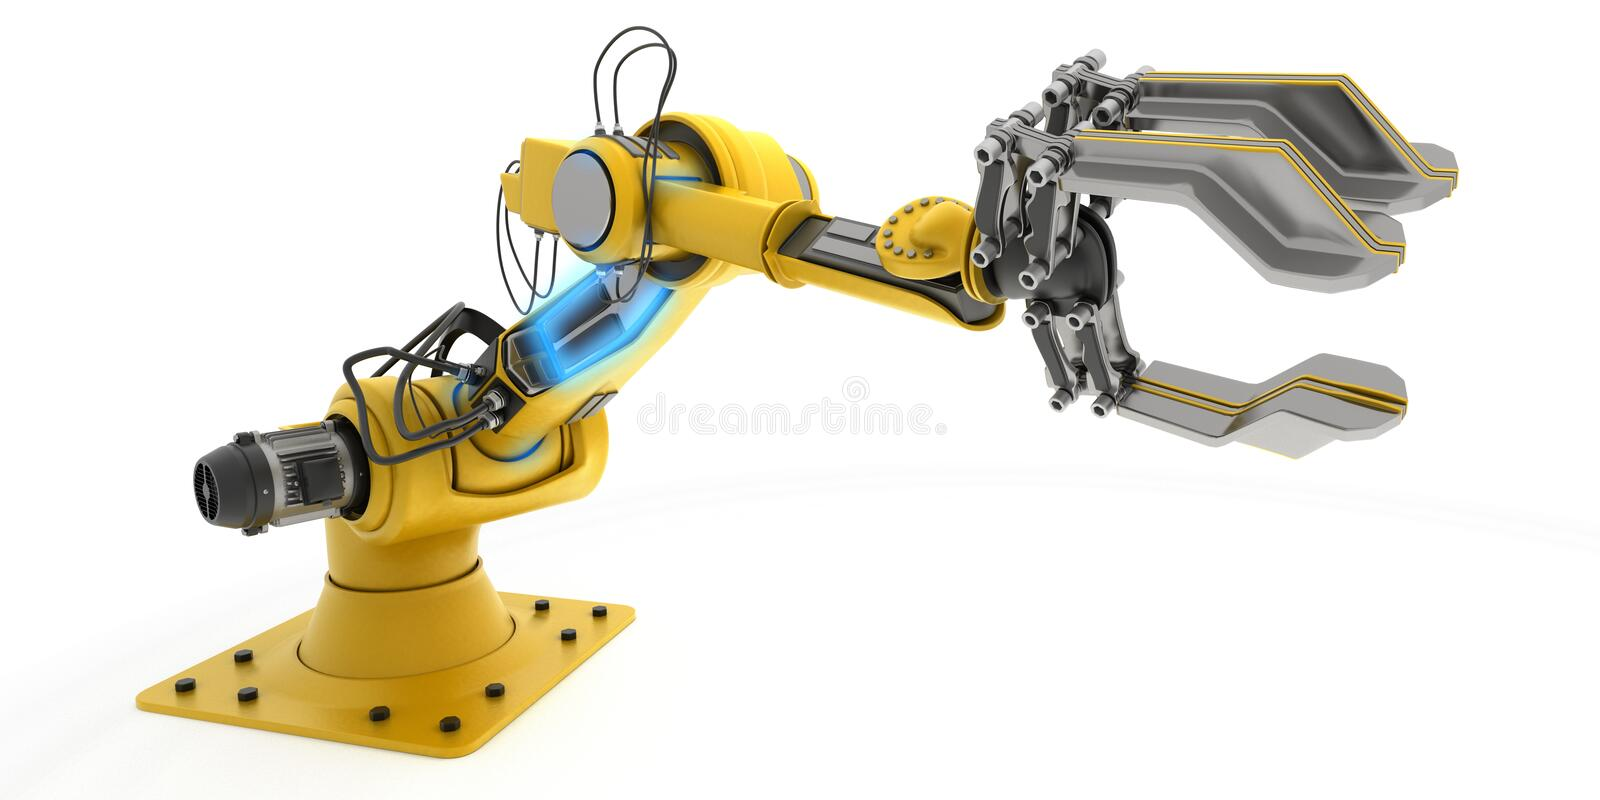 Bras de robot industriel illustration stock